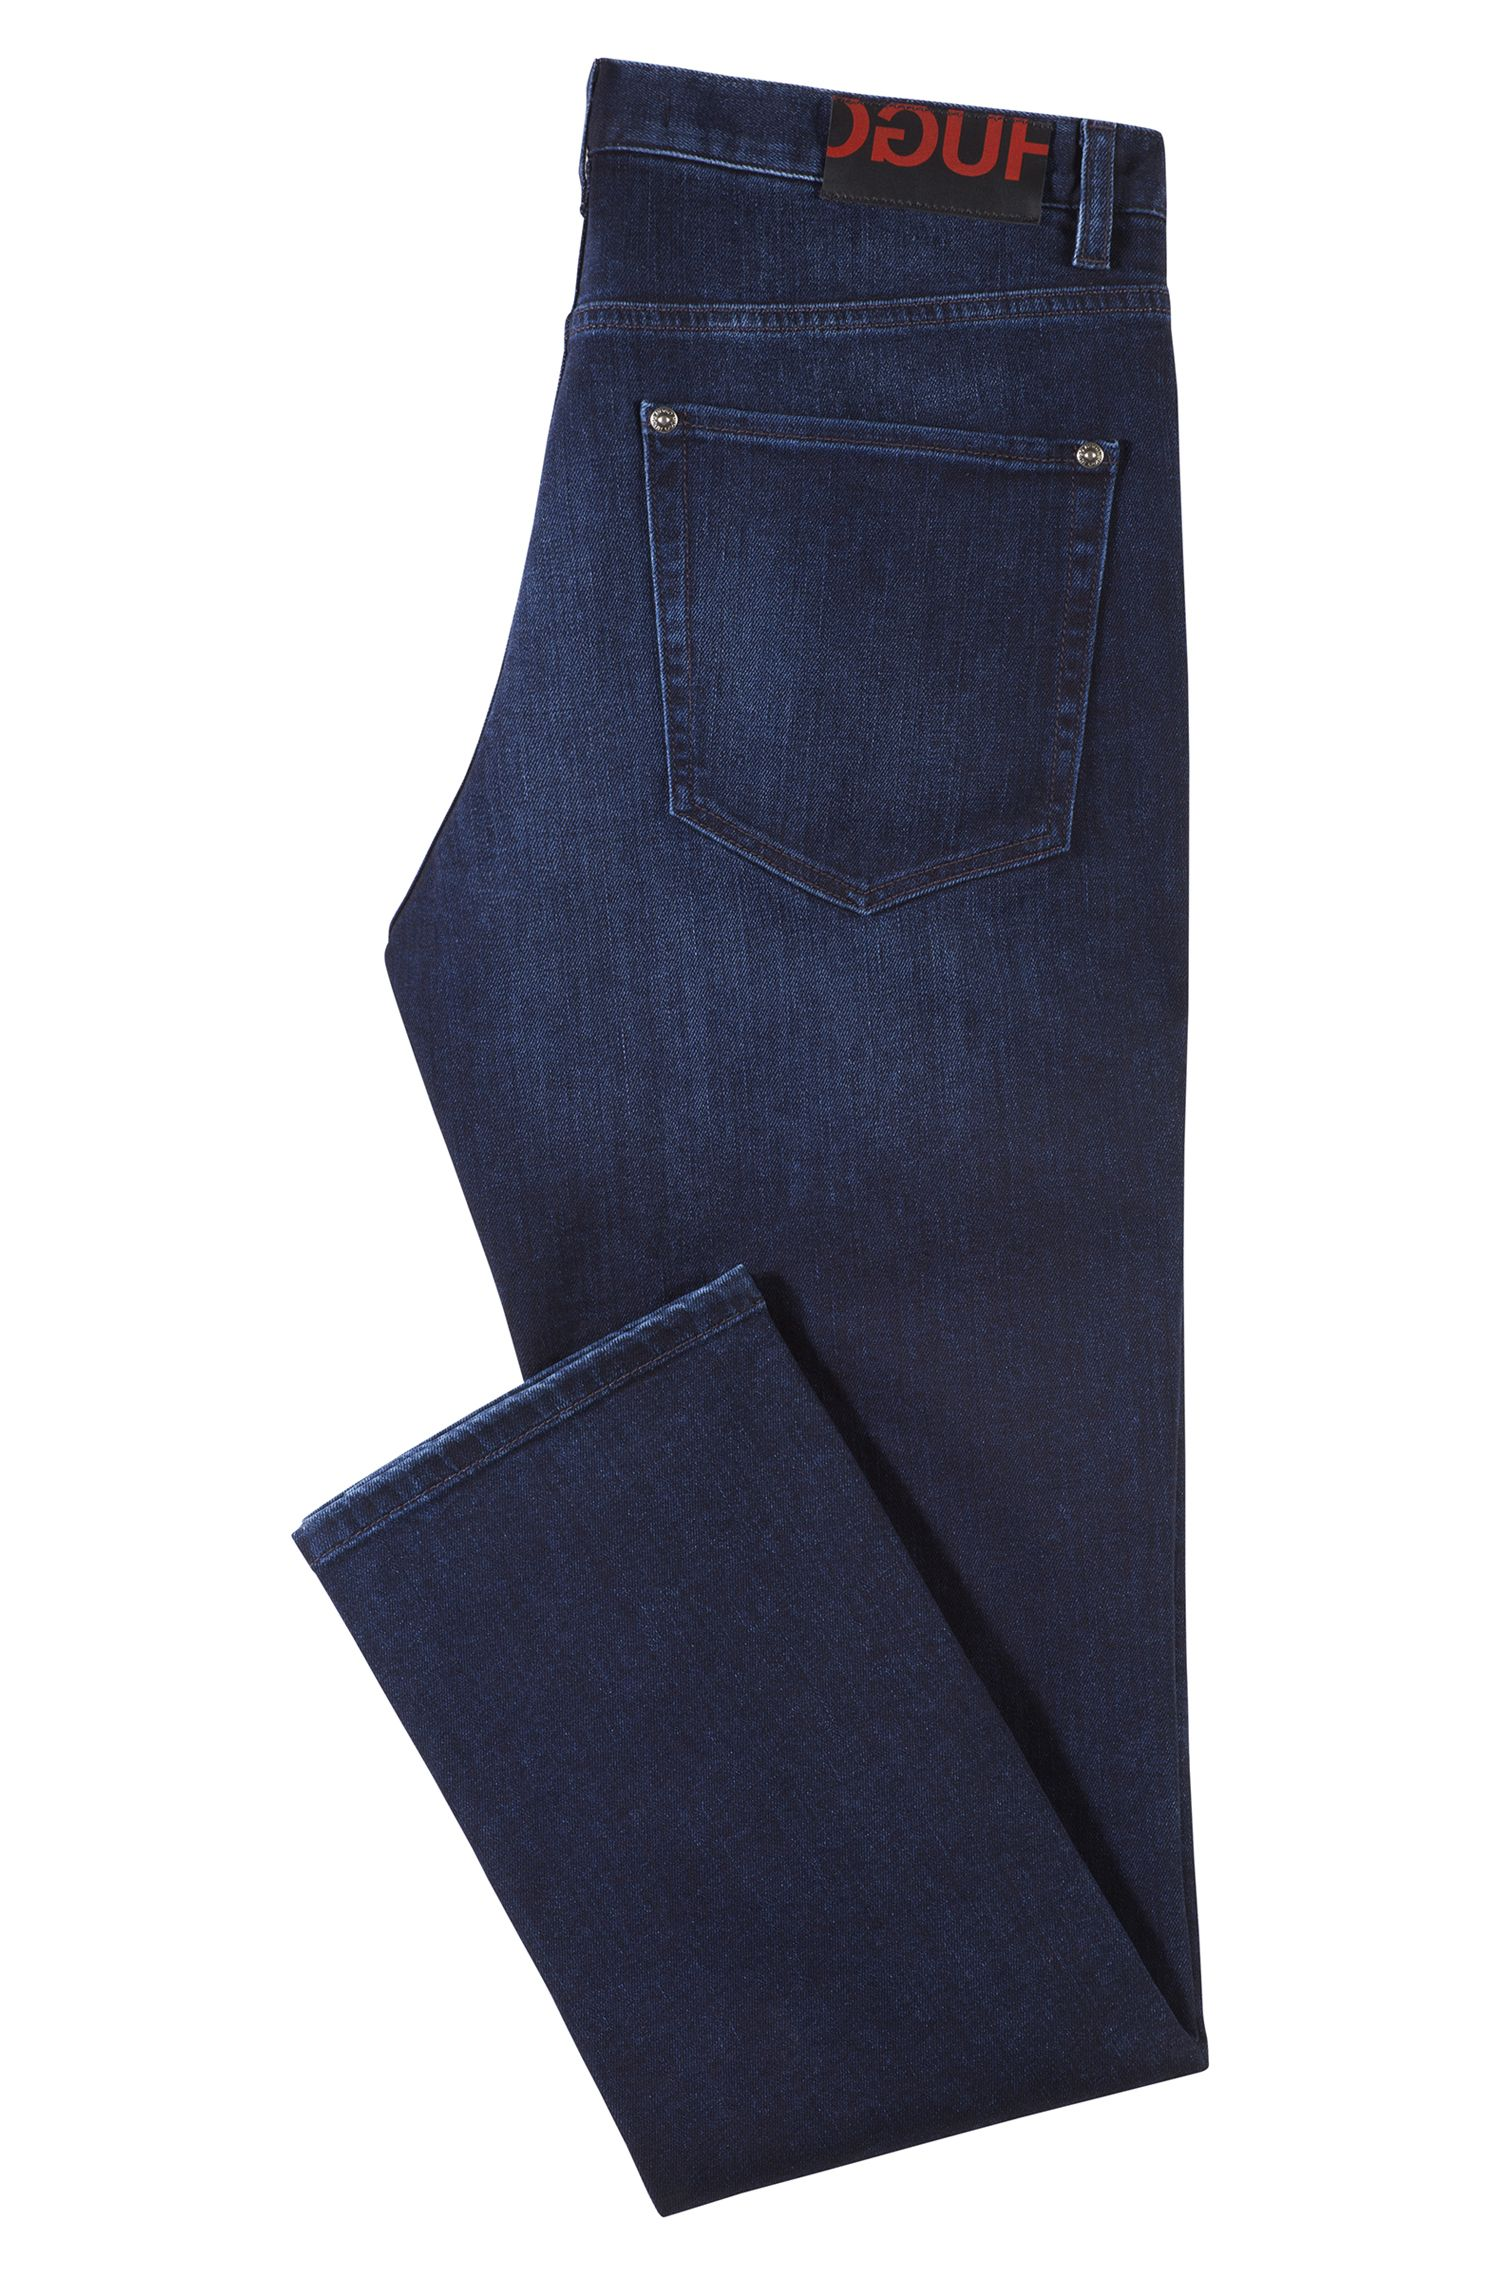 Straight-leg jeans in mid-washed blue stretch denim